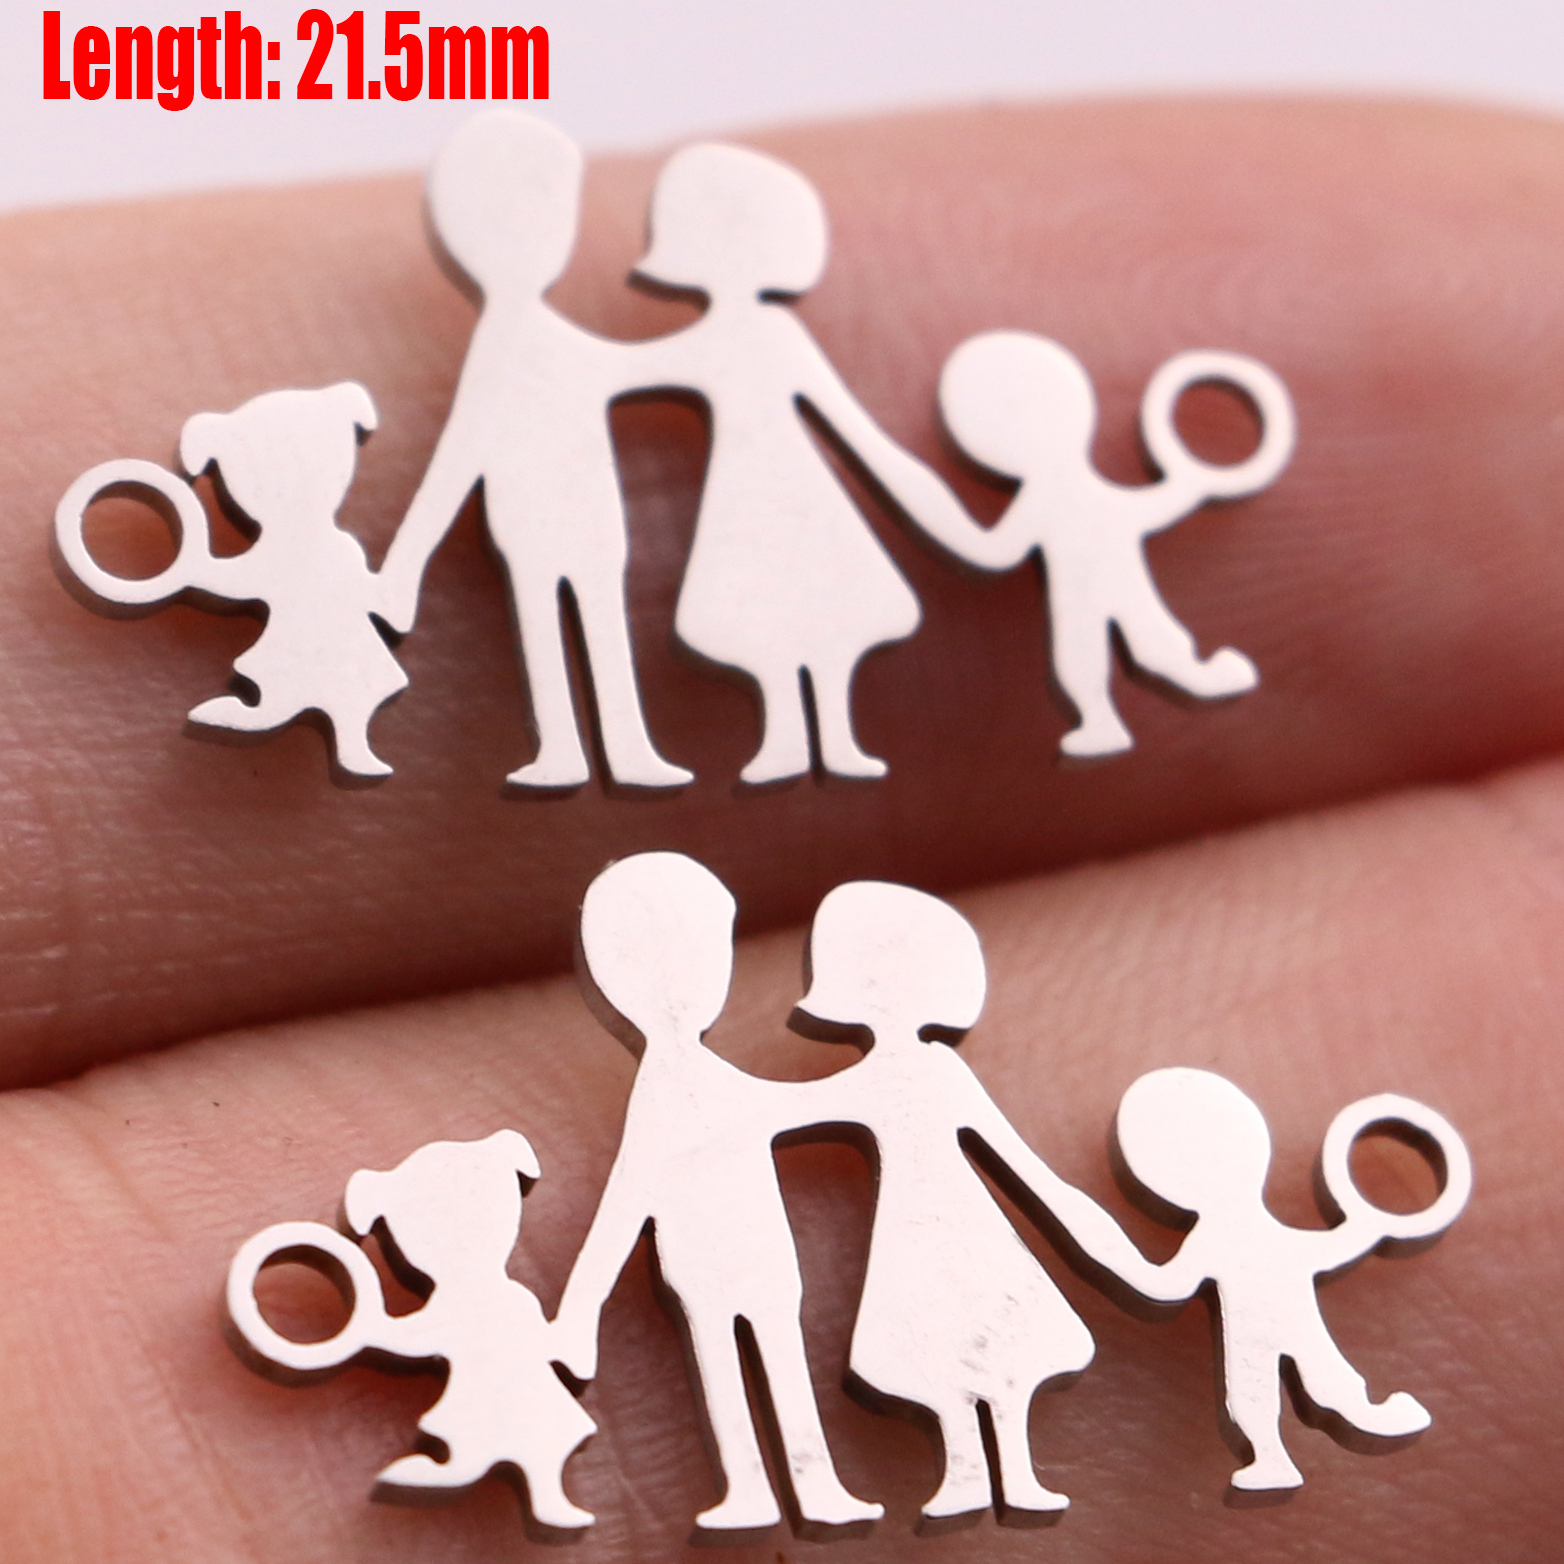 5pcs Family Chain Stainless Steel Pendant Necklace Parents and Children Necklaces Gold/steel Jewelry Gift for Mom Dad New Twice - Цвет: Steel 38